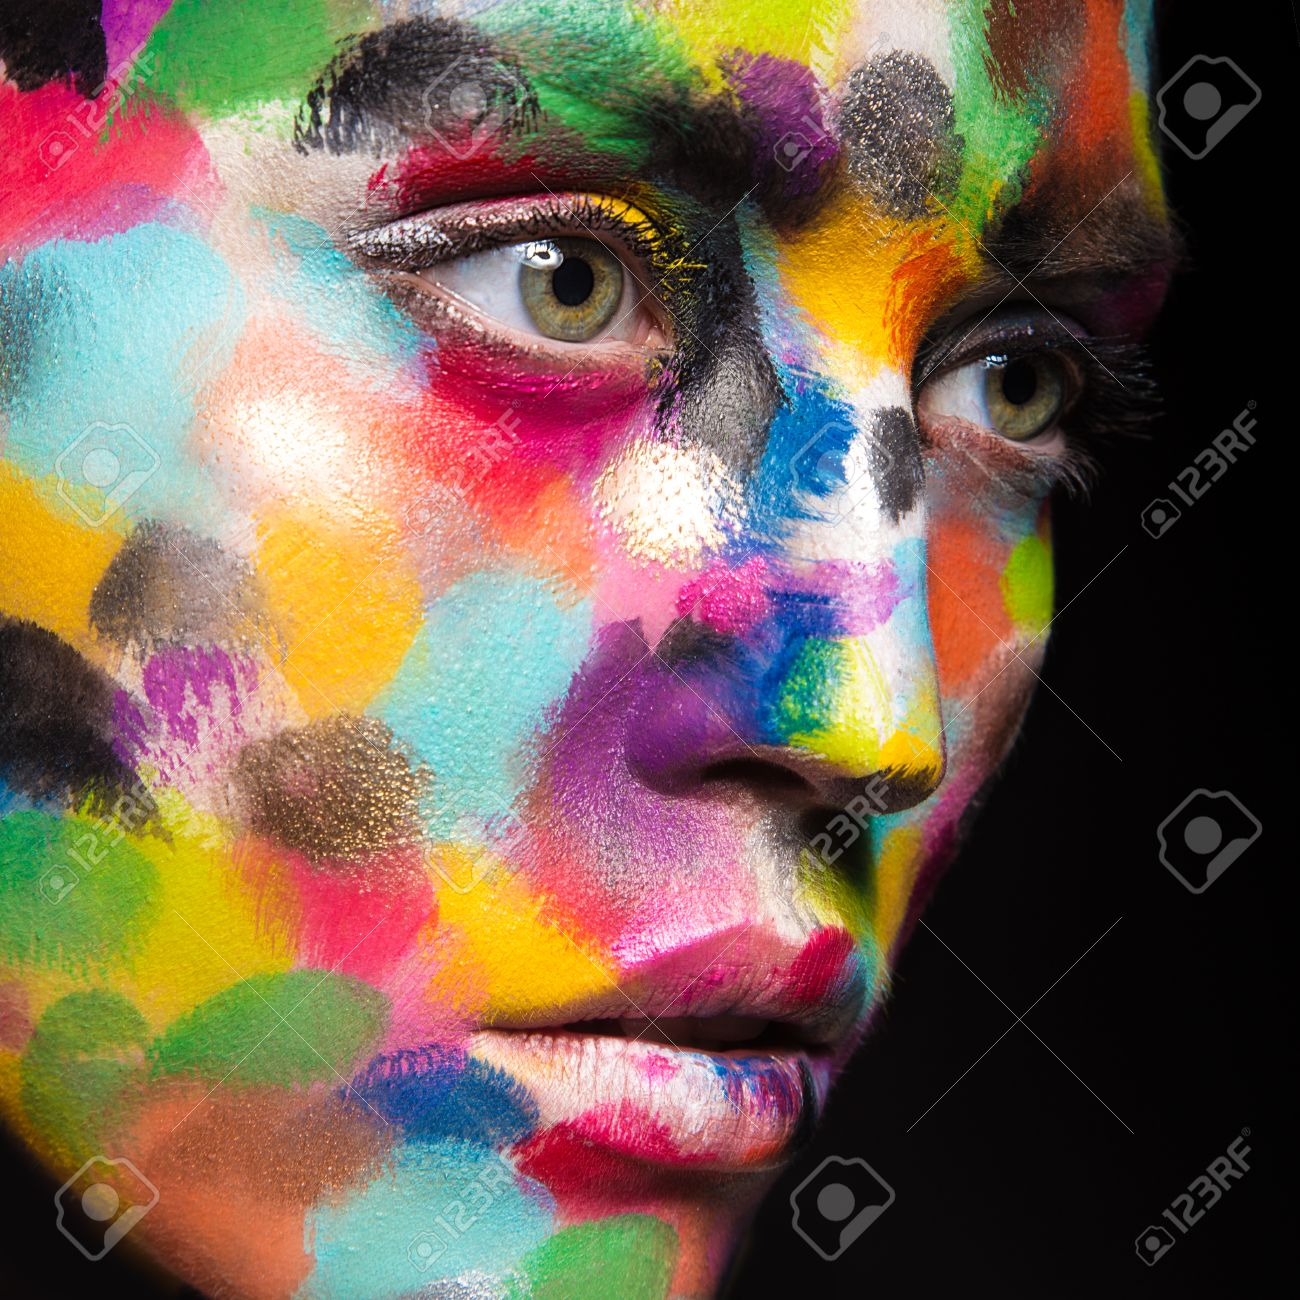 Girl with colored face painted. Art beauty image. Picture taken in the studio on a black background. - 43728649